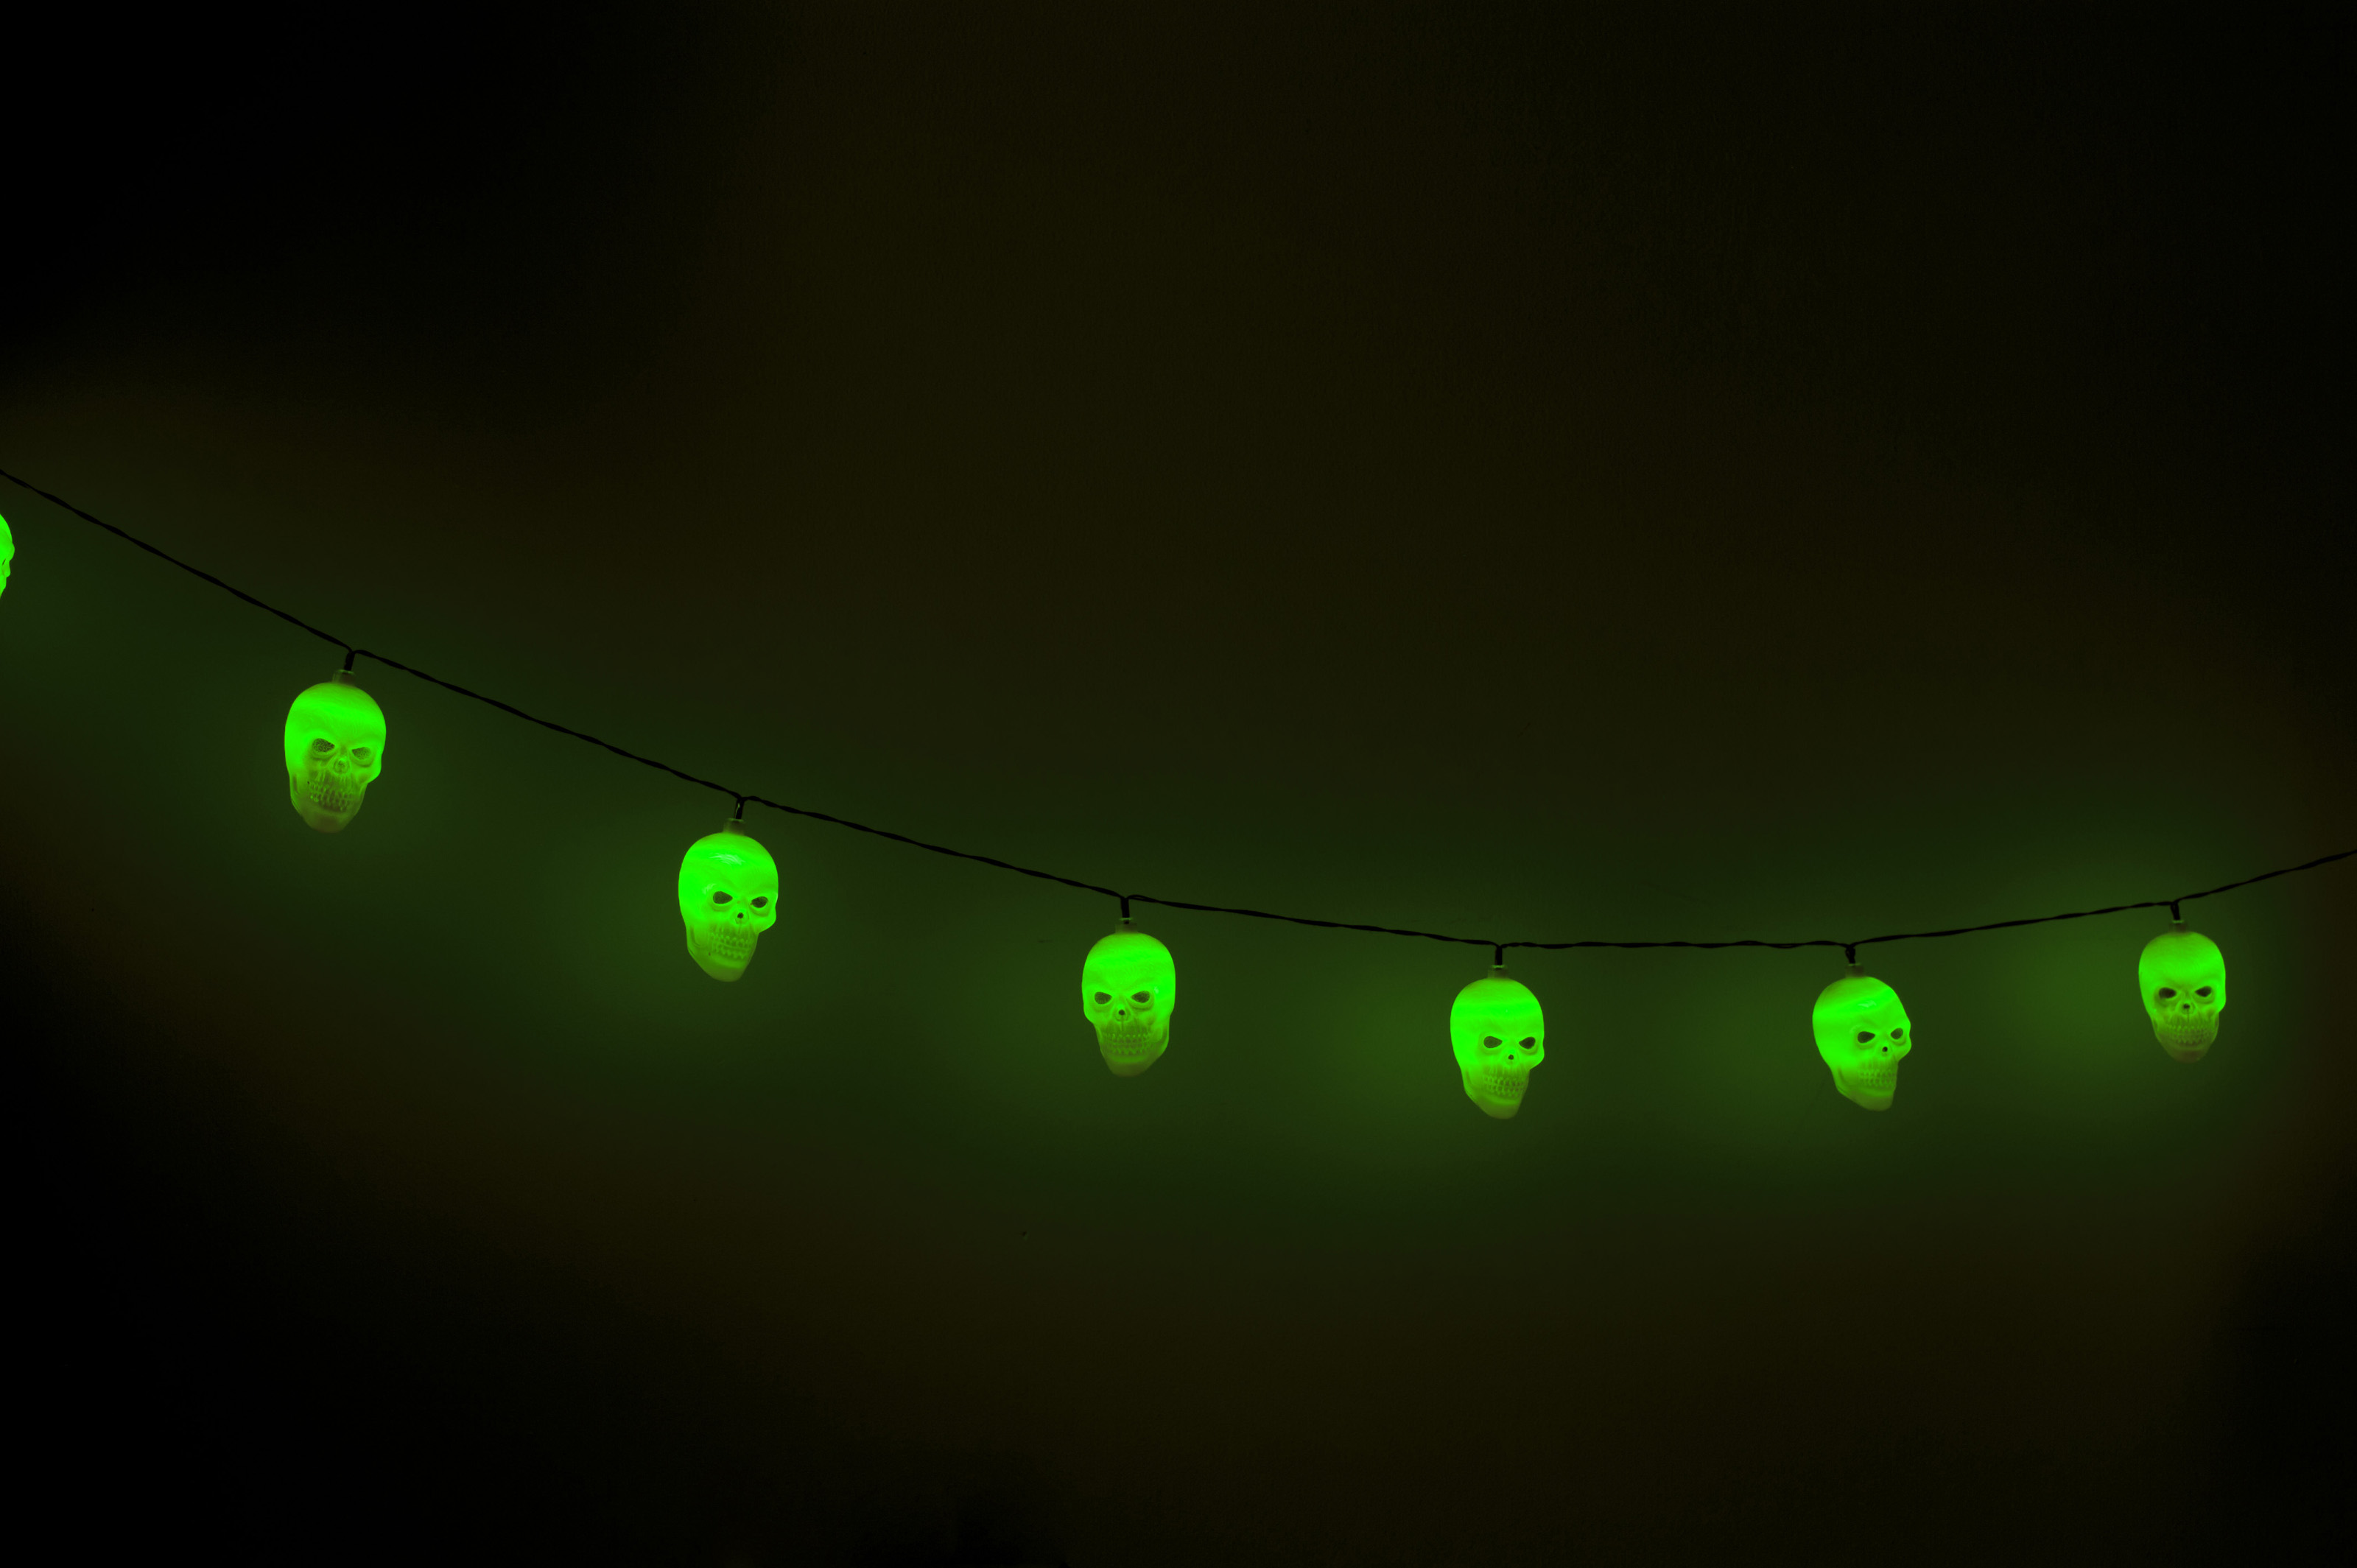 Six scull shaped lanterns hang in a row on cord glowing green against a dark background